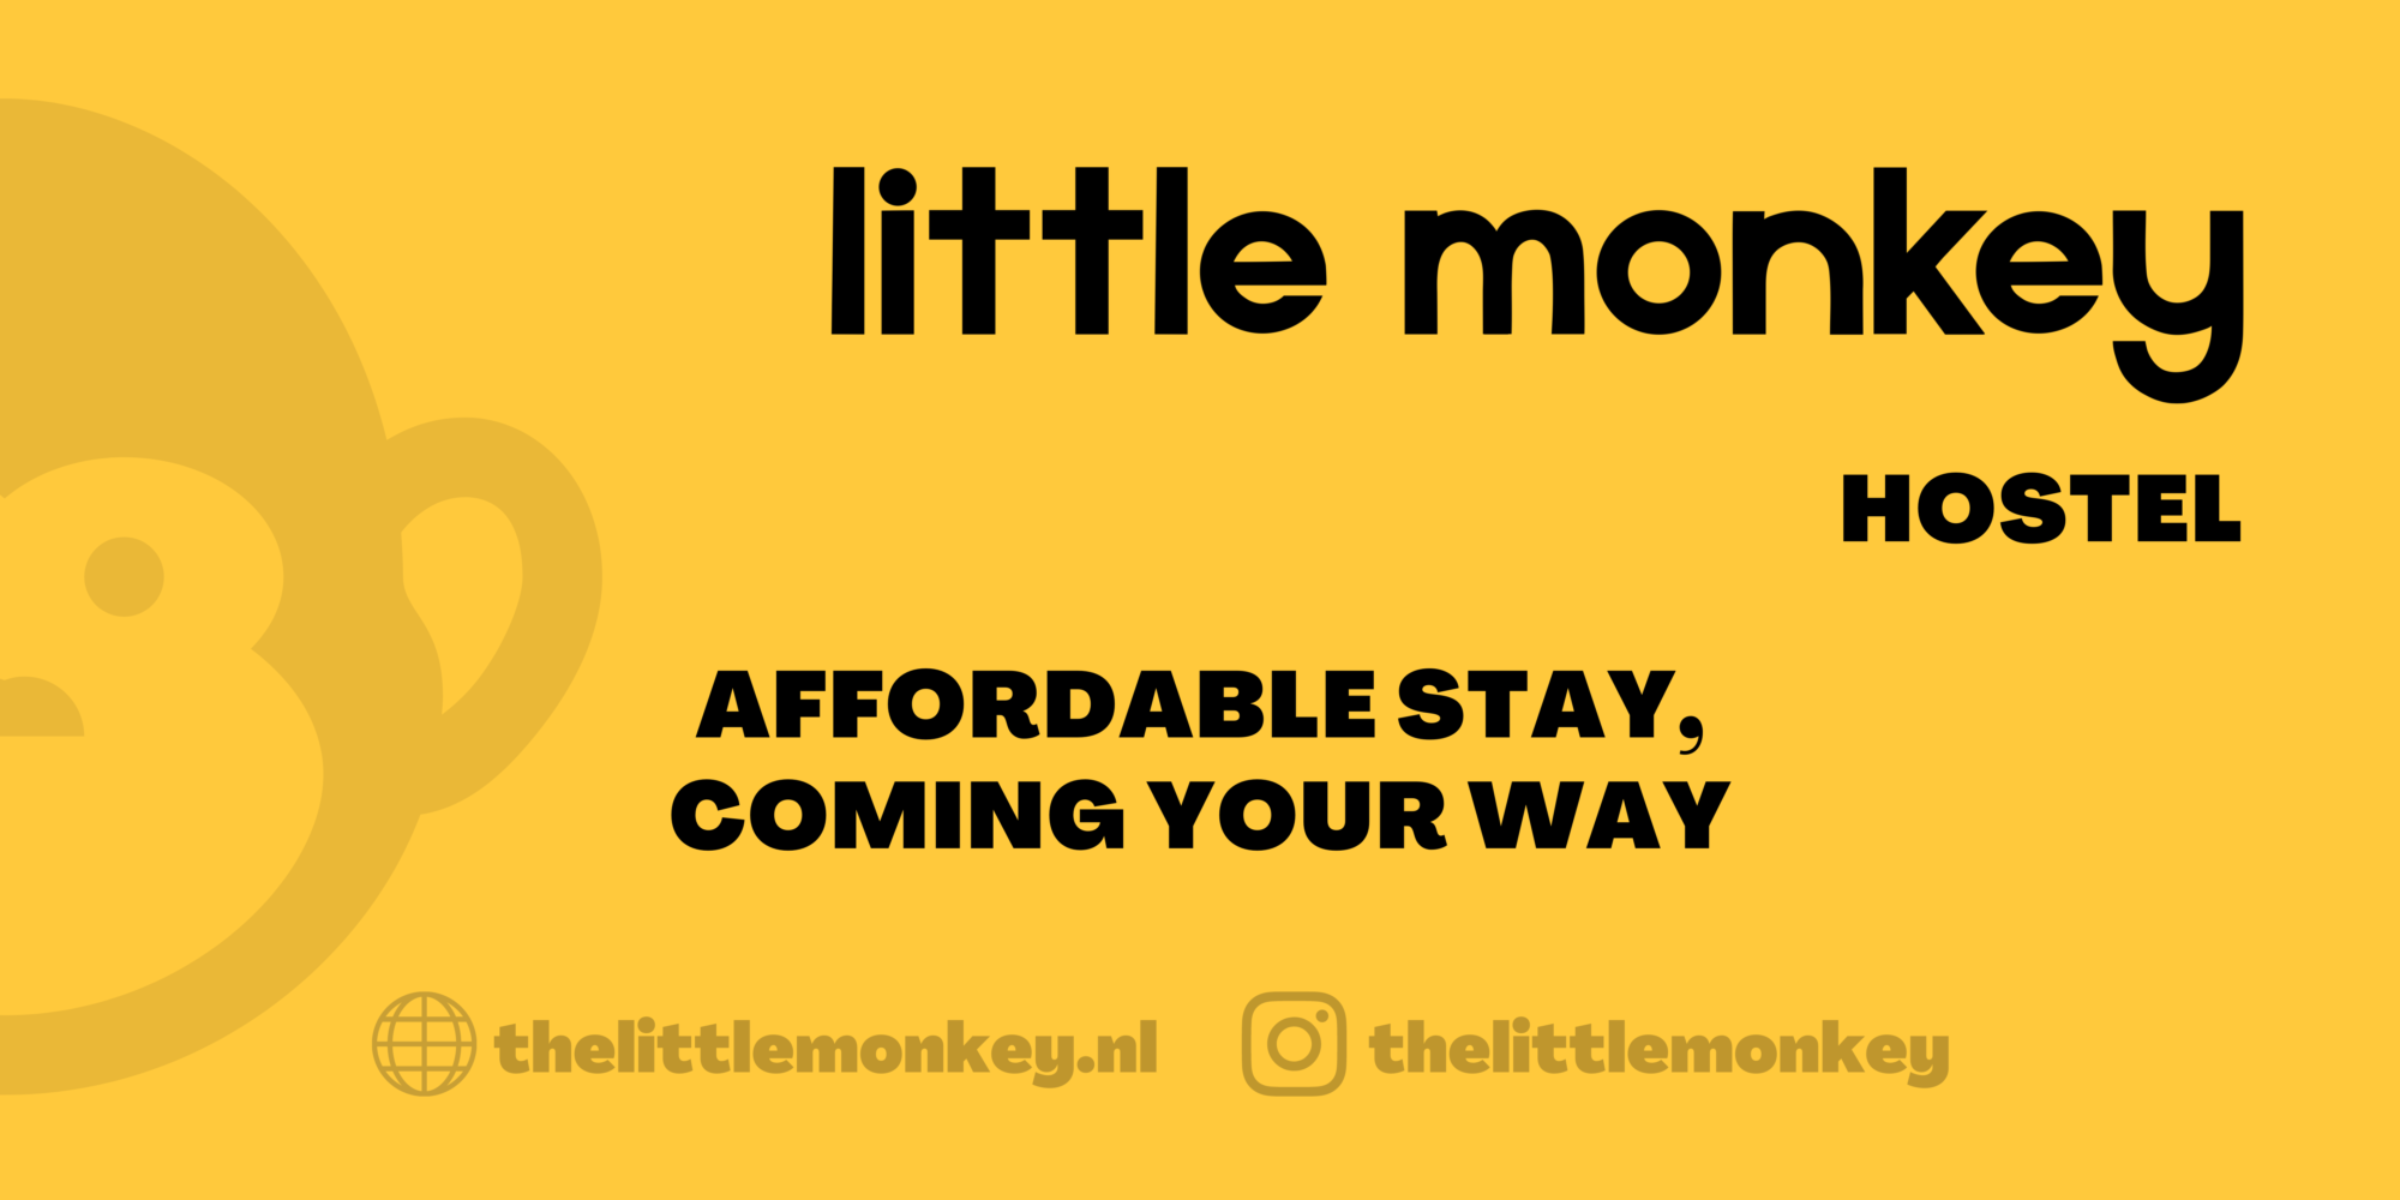 Little Monkey Hostel banner